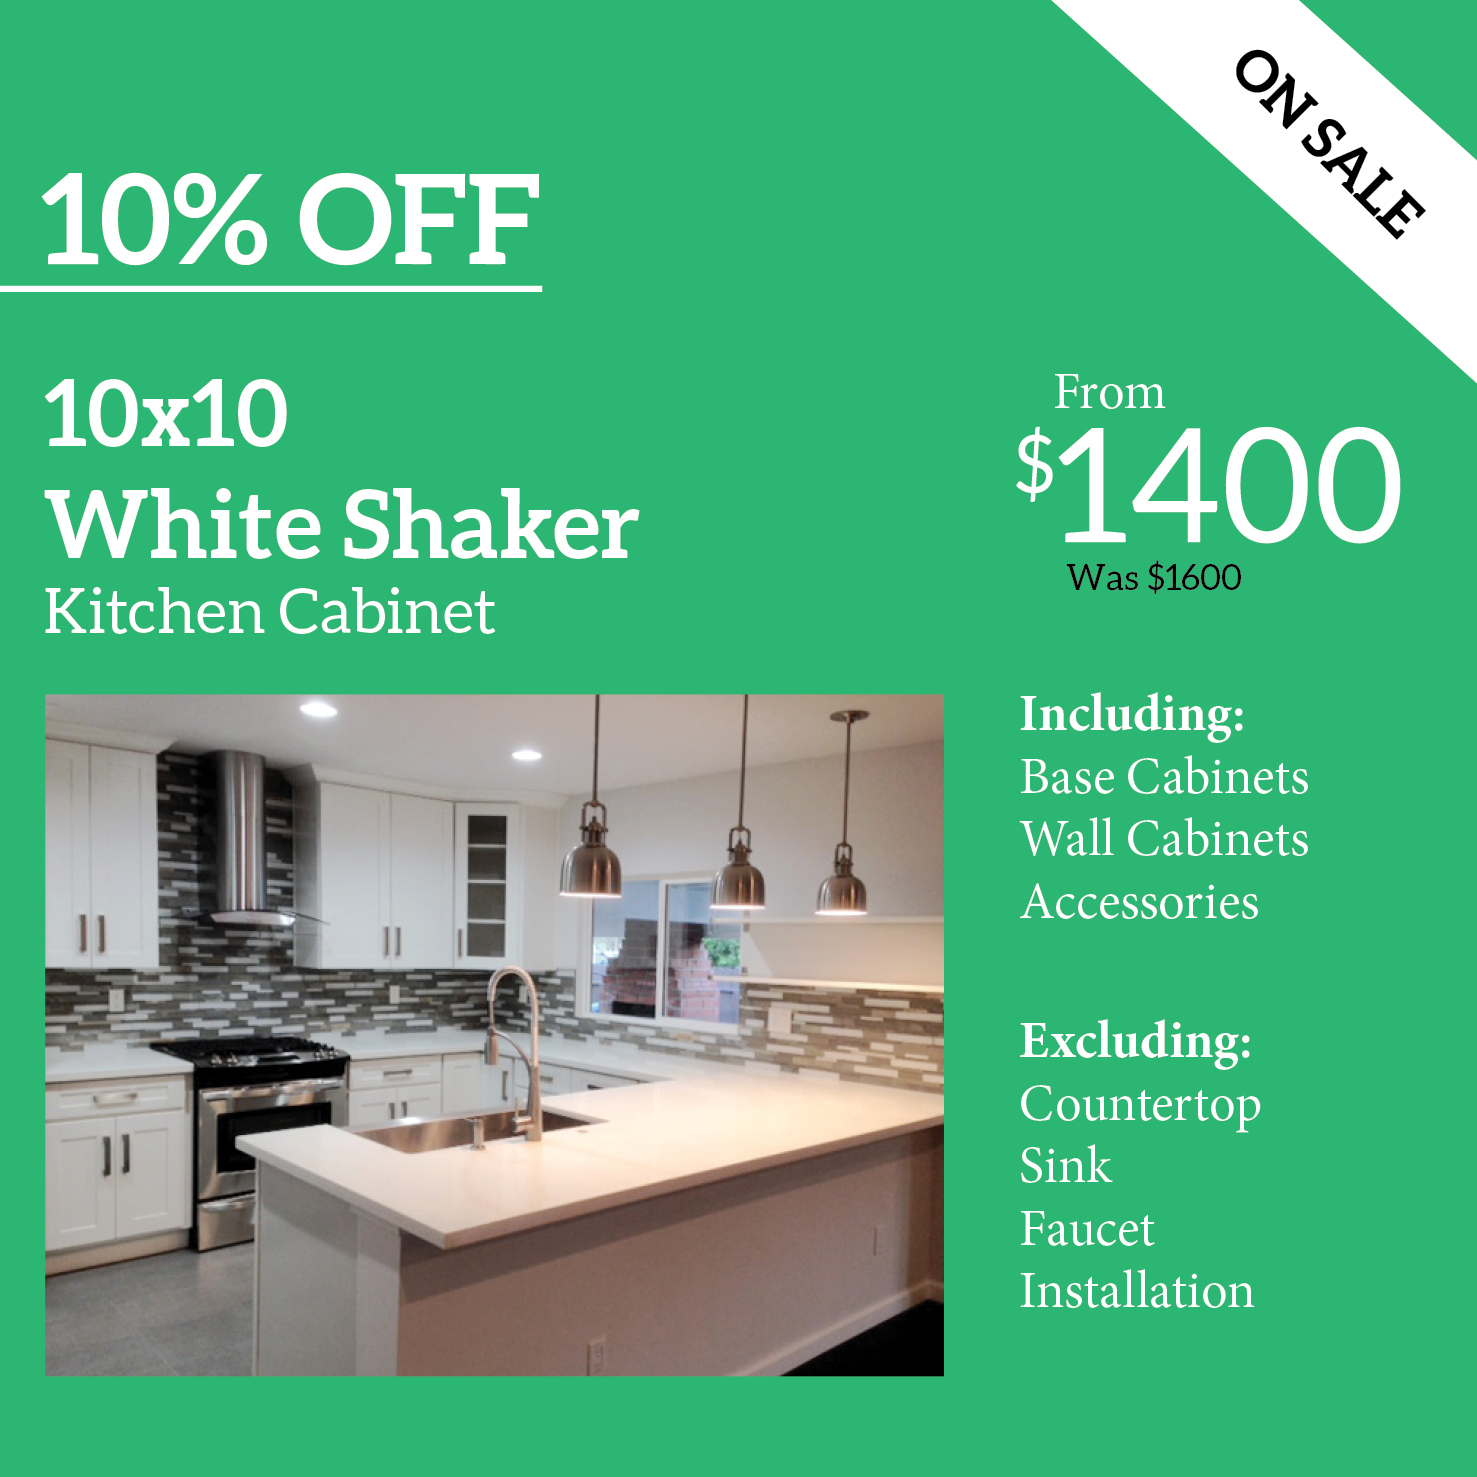 Off White Shaker Cabinets White Shaker Kitchen Cabinet